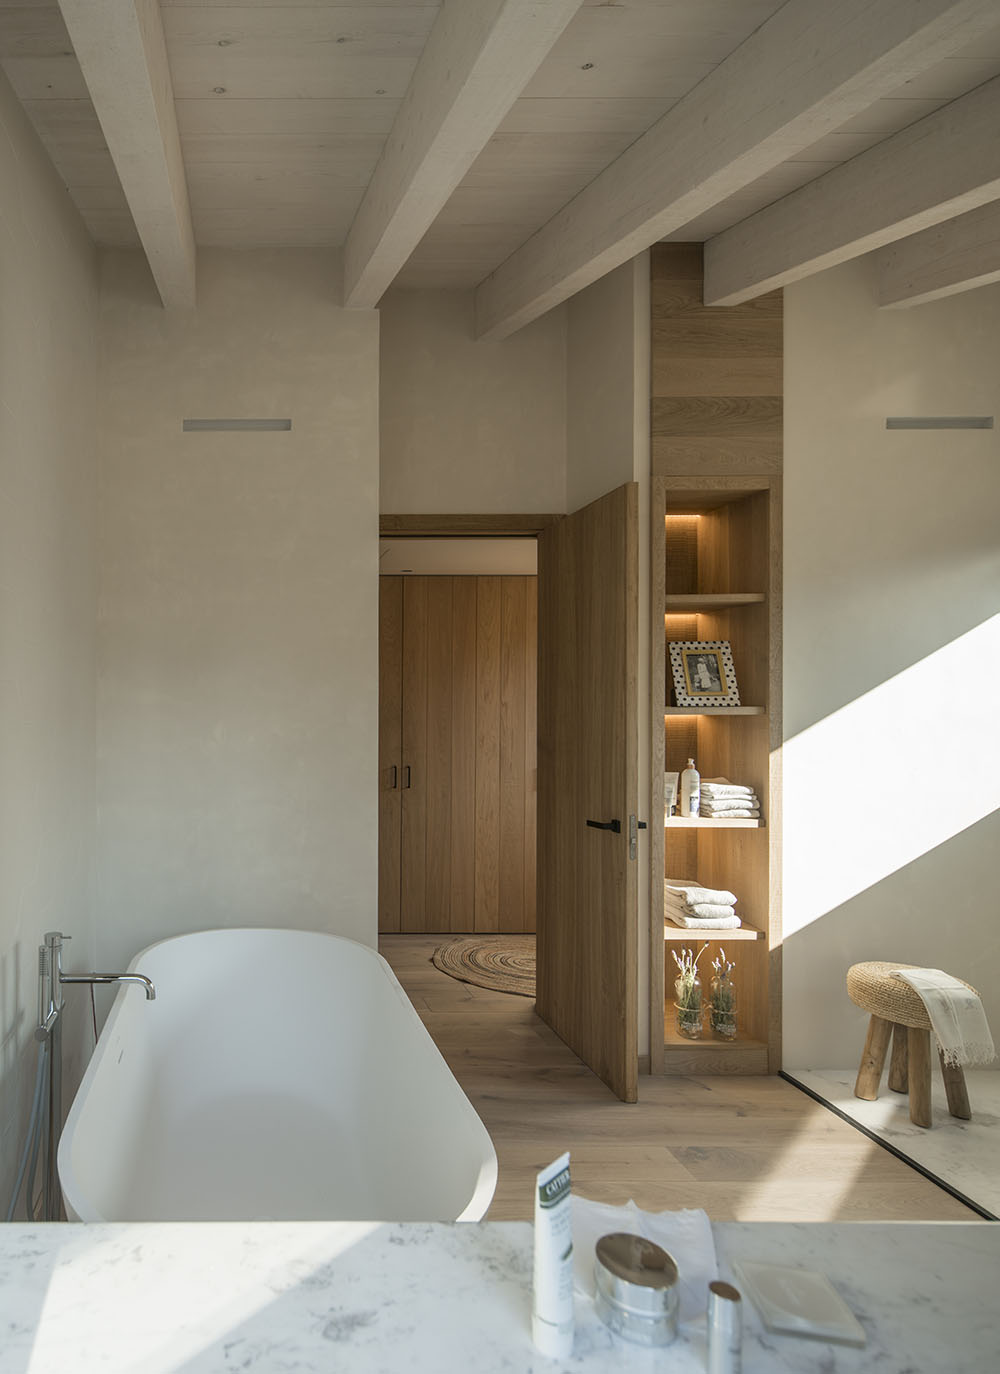 The narrow storage shelving features recessed lighting.